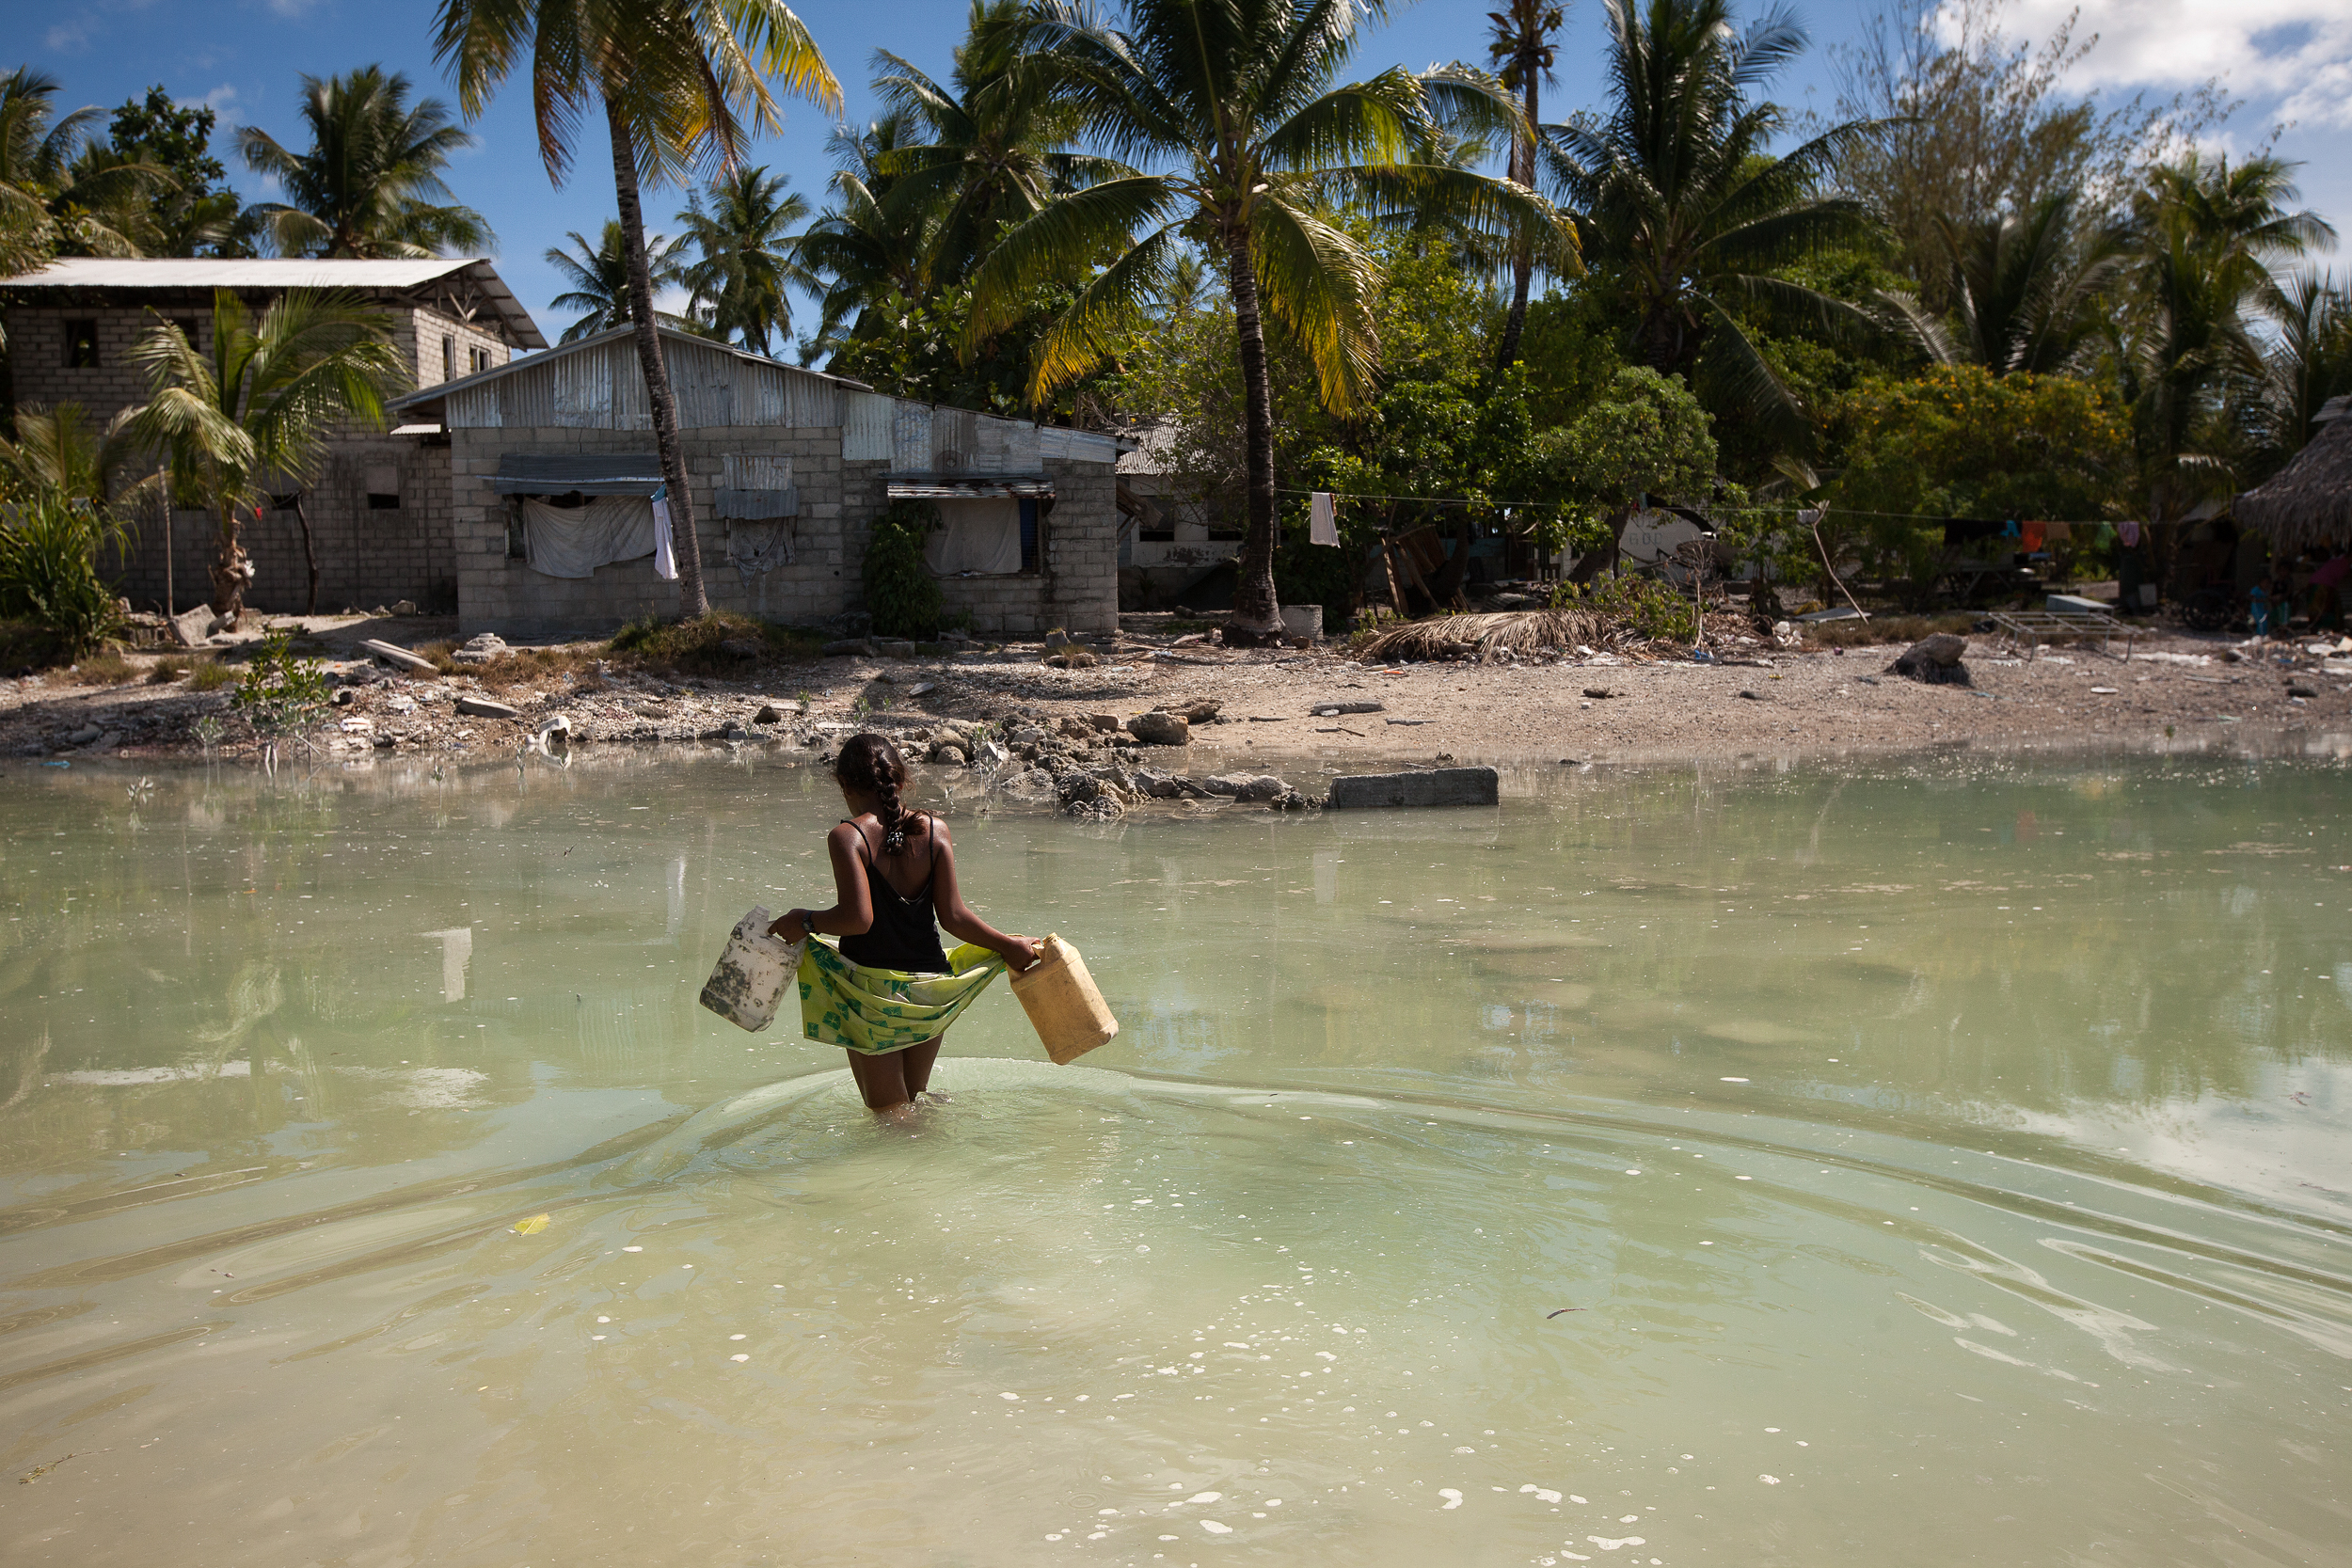 A young girl crosses the heavily polluted lagoon at high tide to get some water for her family, who live on a thin strip of sand that gets cut off from the main island every high tide.